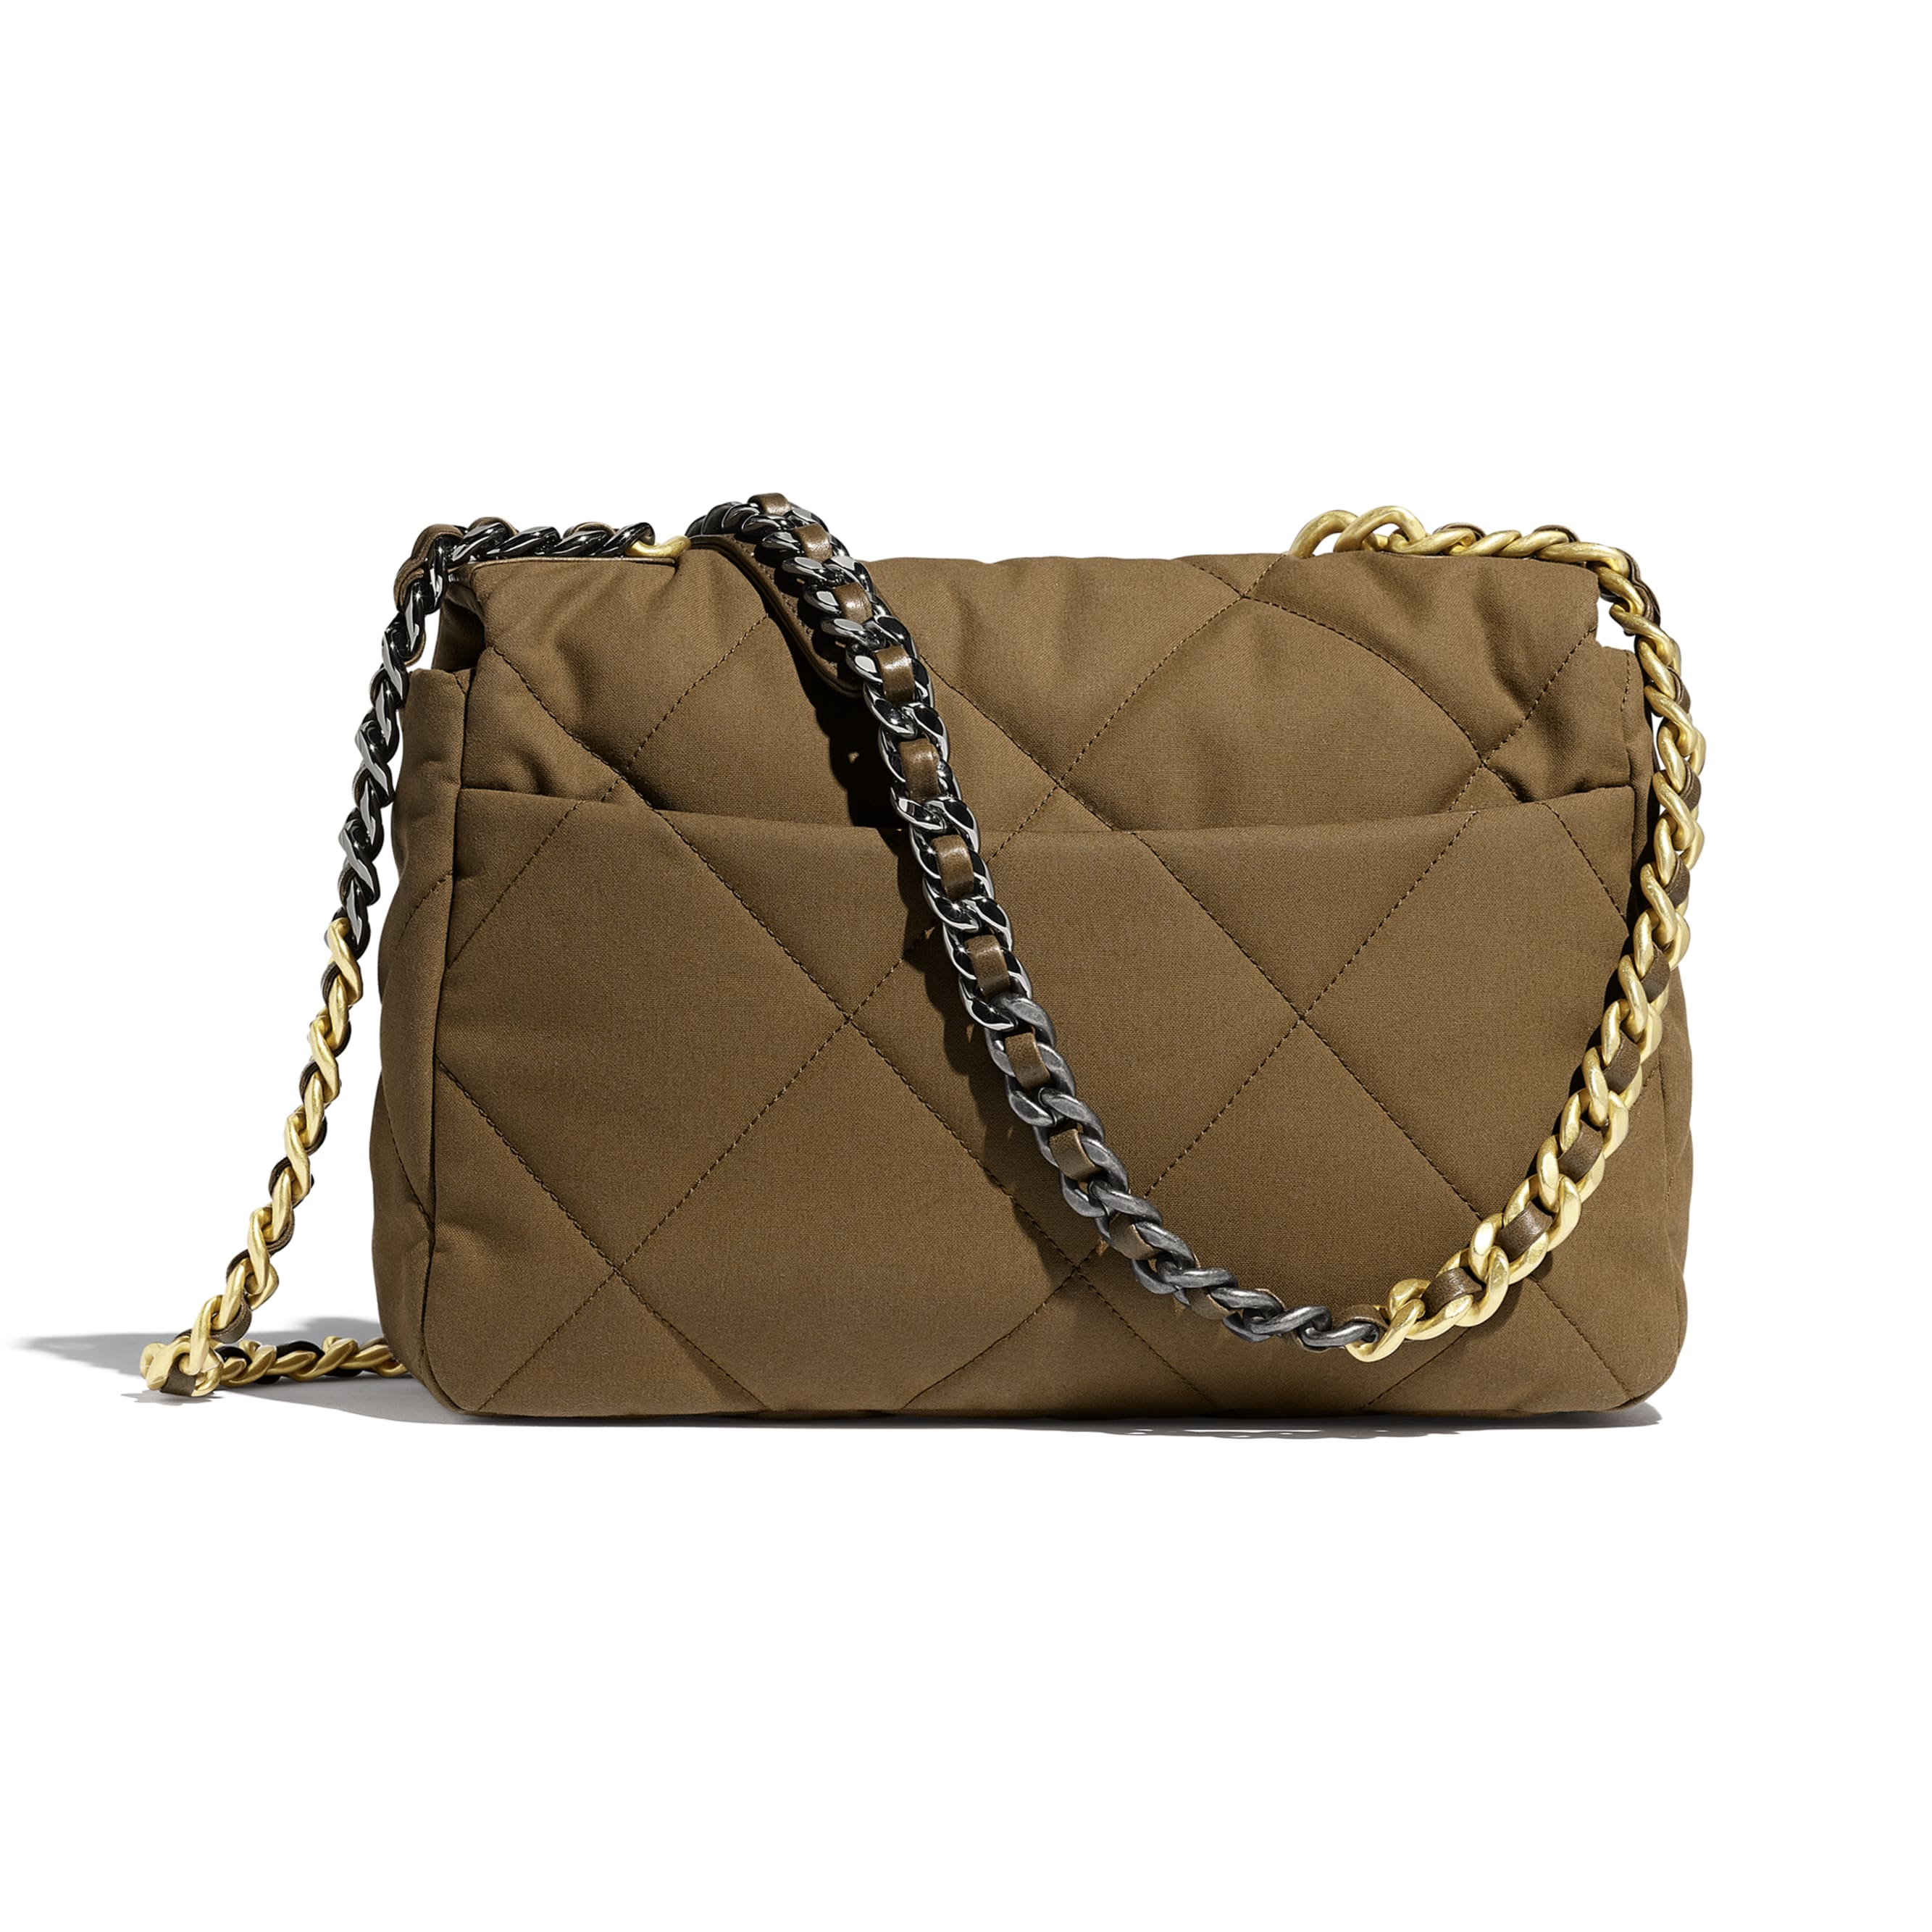 CHANEL 19 Large Flap Bag - Bronze - Cotton Canvas, Calfskin, Gold-Tone, Silver-Tone & Ruthenium-Finish Metal - Alternative view - see standard sized version